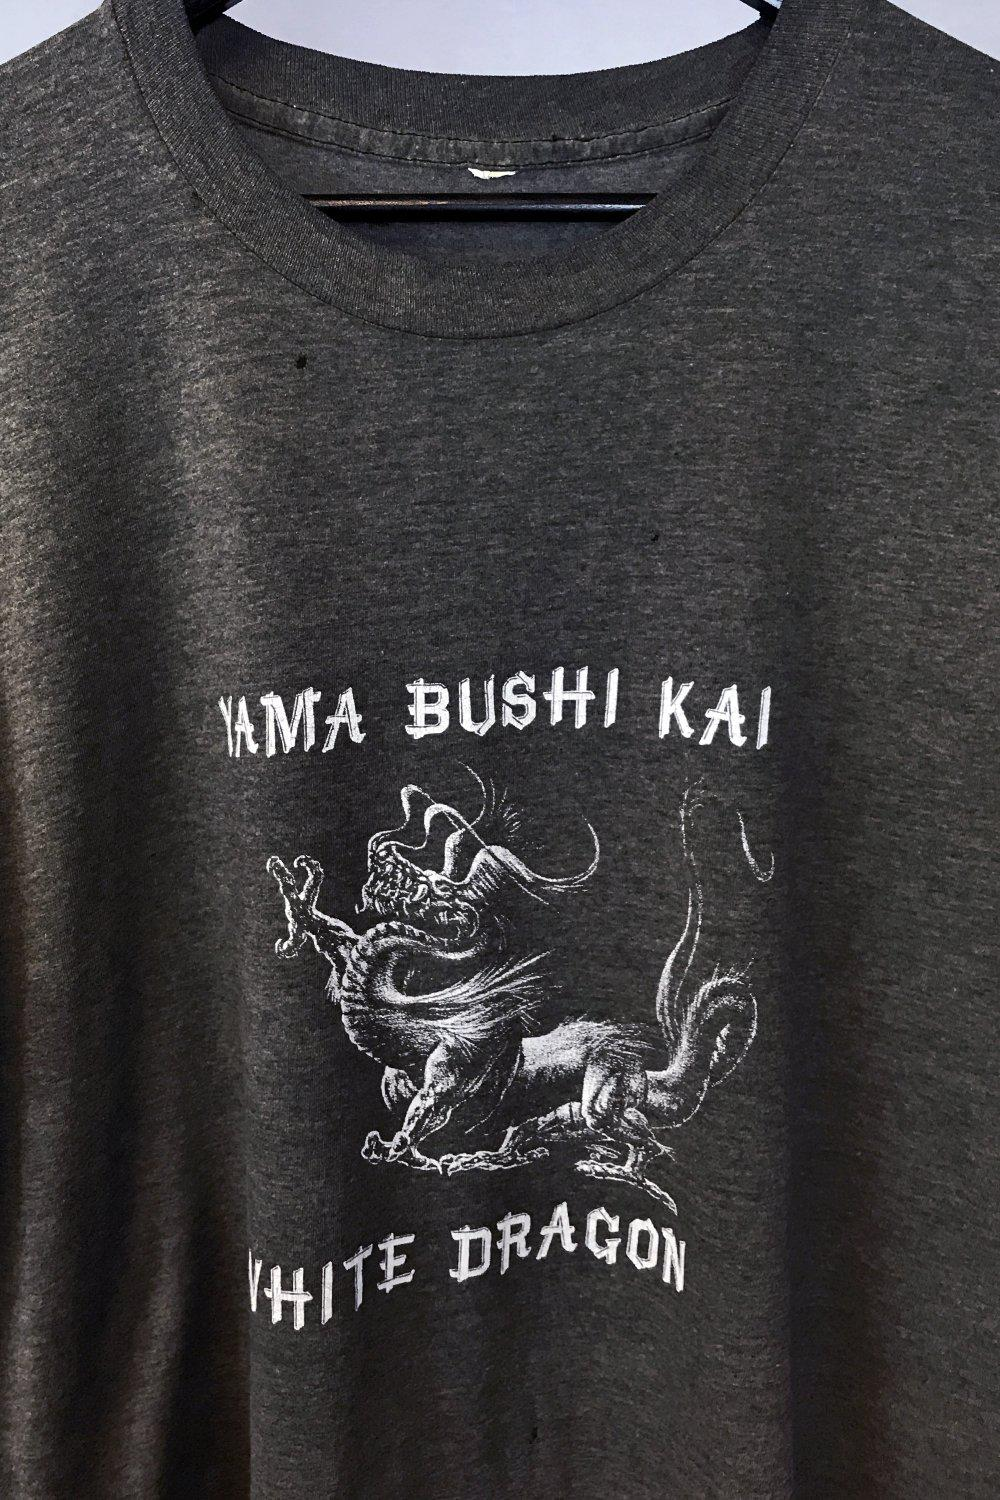 Paper Thin Heavily Worn Yama Bushi Kai White Dragon Tee